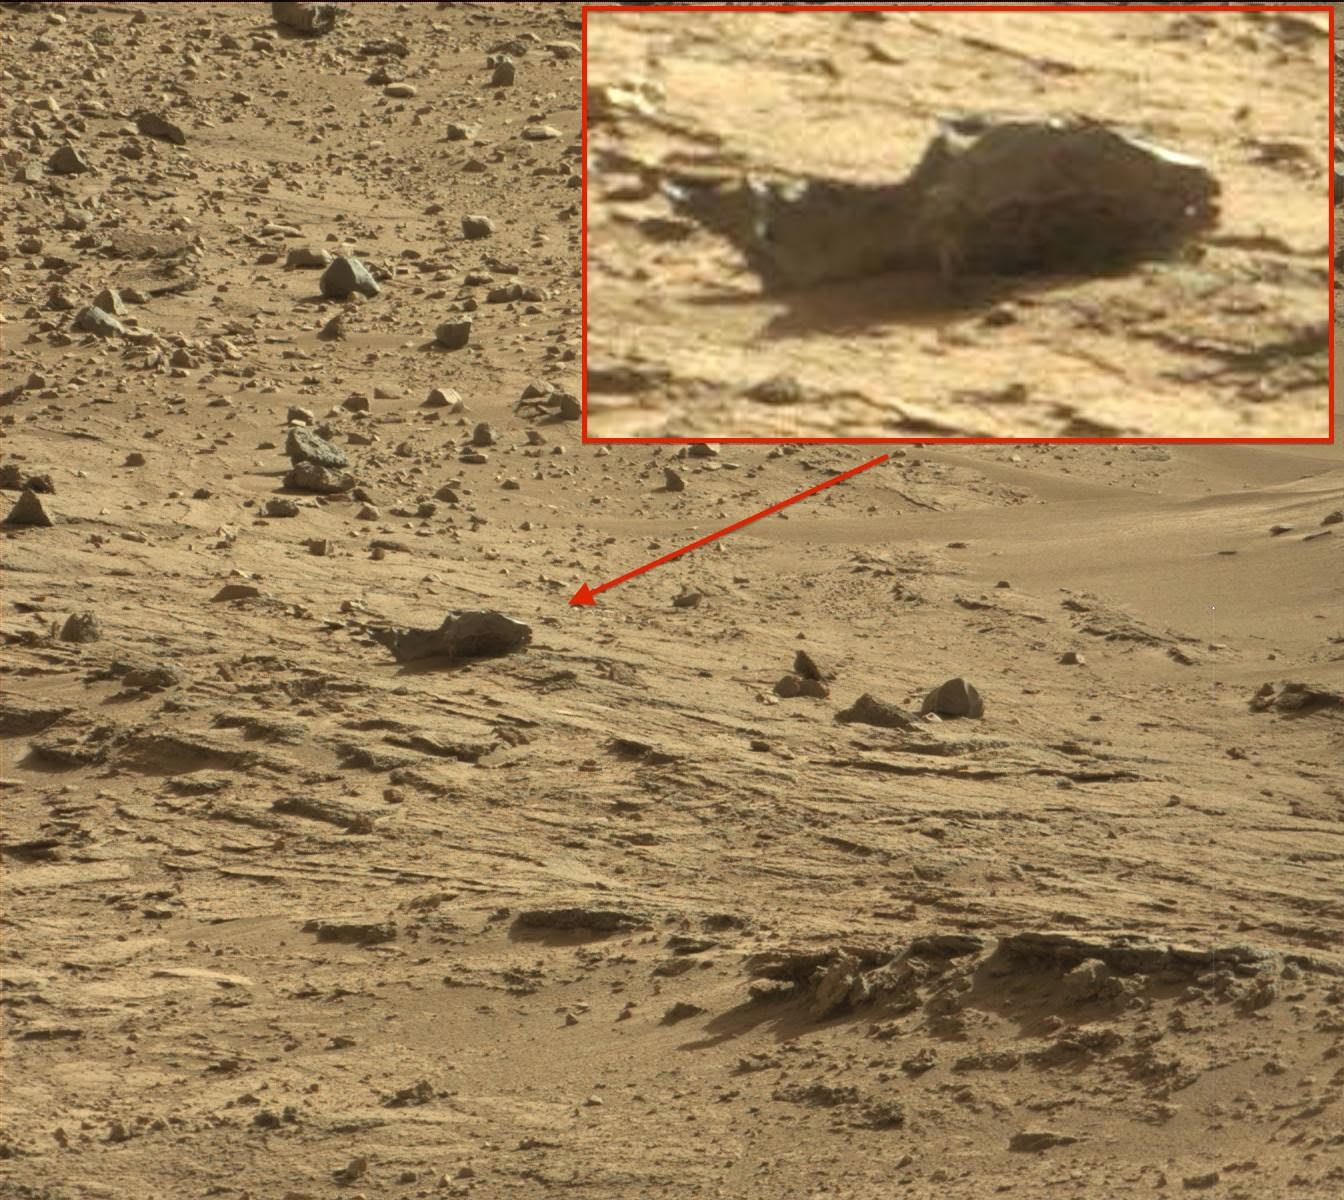 mars rover creature - photo #8